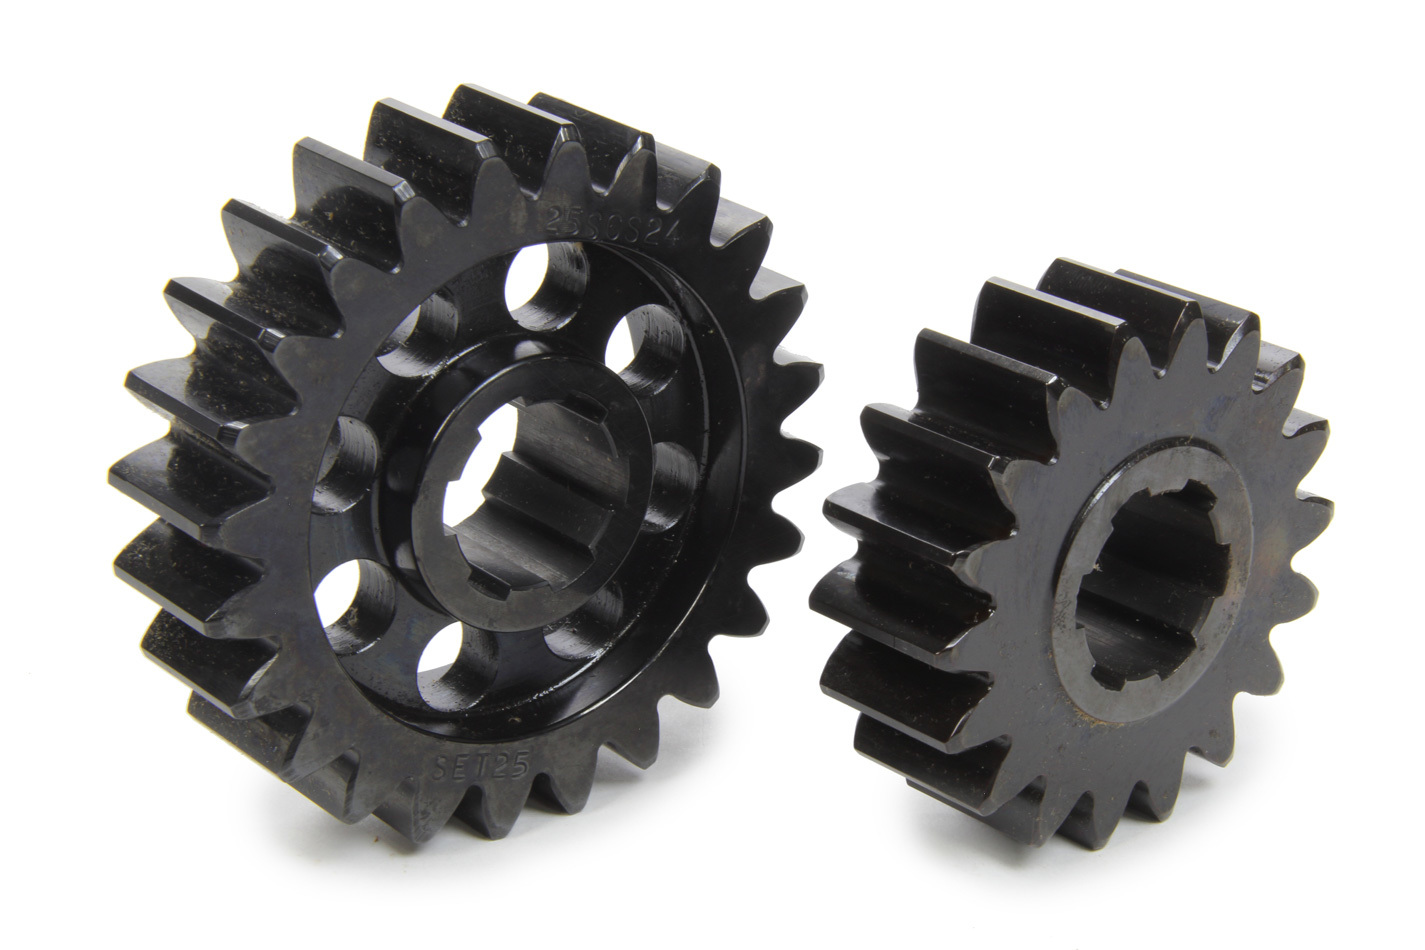 SCS Gears 625 Quick Change Gear Set, Professional, Set 625, 6 Spline, 4.11 Ratio 3.08 / 5.48, 4.33 Ratio 3.25 / 5.77, Steel, Each